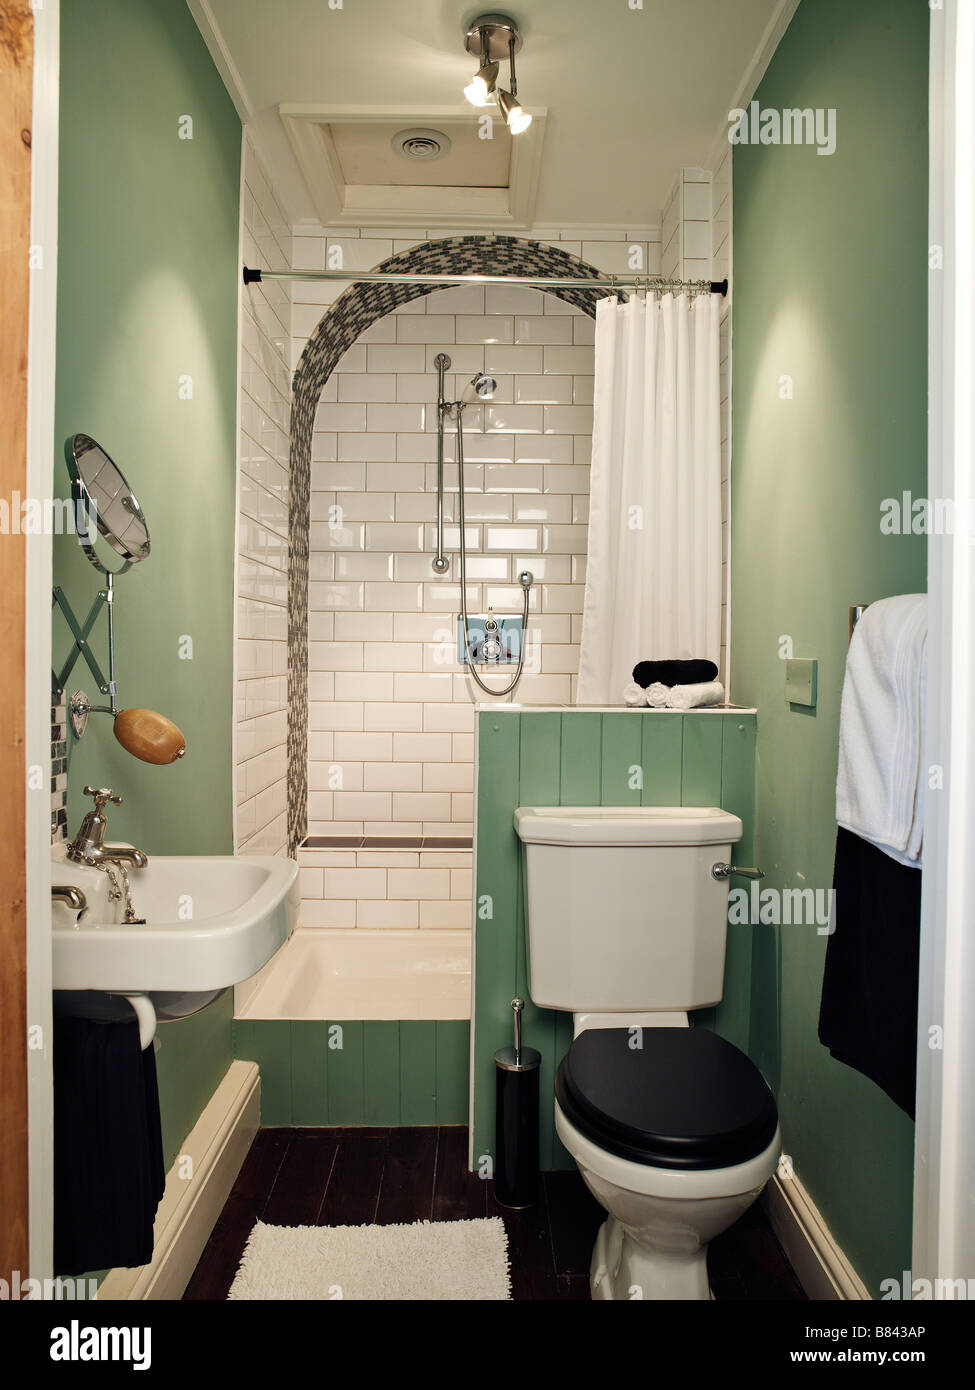 kleines bad mit dusche wc und waschbecken stockfoto bild 22218078 alamy. Black Bedroom Furniture Sets. Home Design Ideas